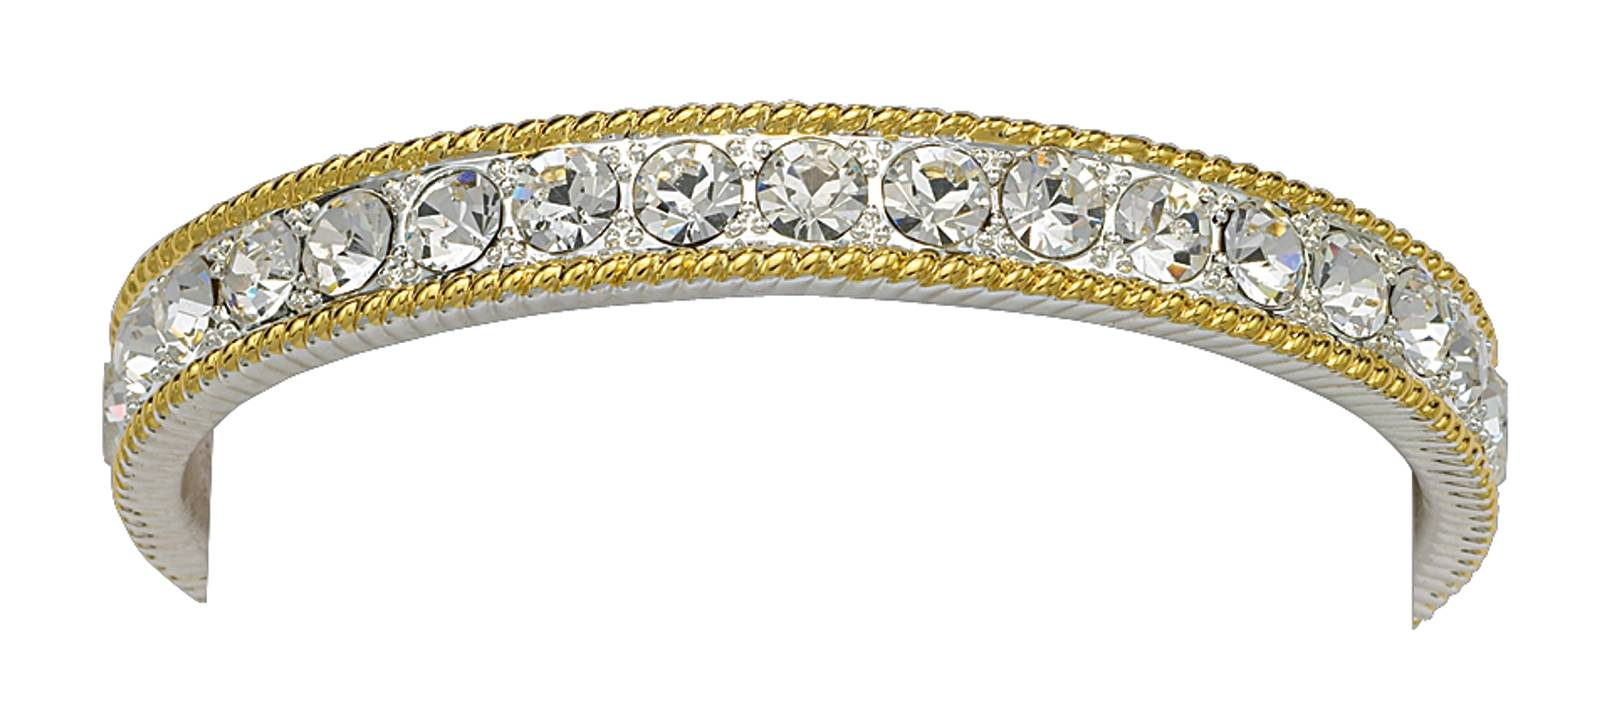 Montana Silversmiths Crystal Shine In Gold Bangle Bracelet